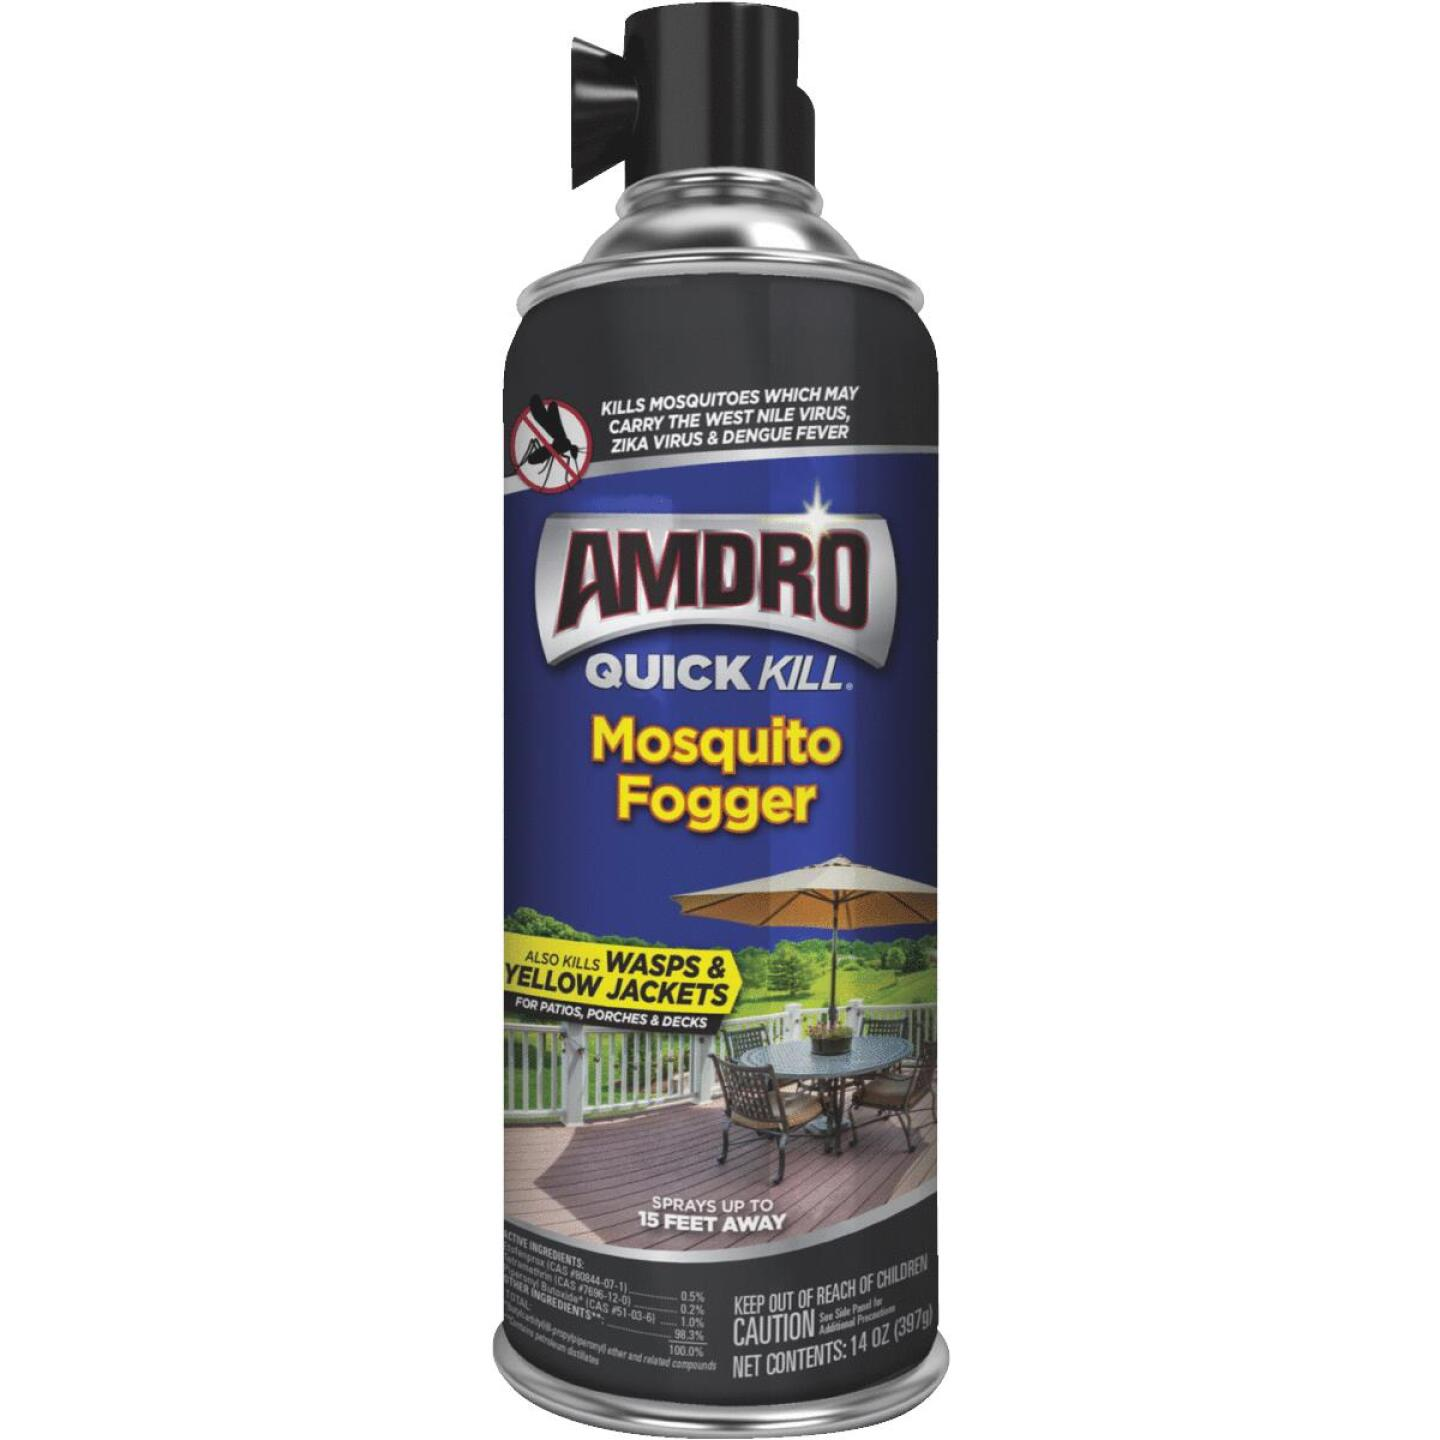 Amdro Quick Kill 14 Oz. Outdoor Mosquito Fogger Image 1